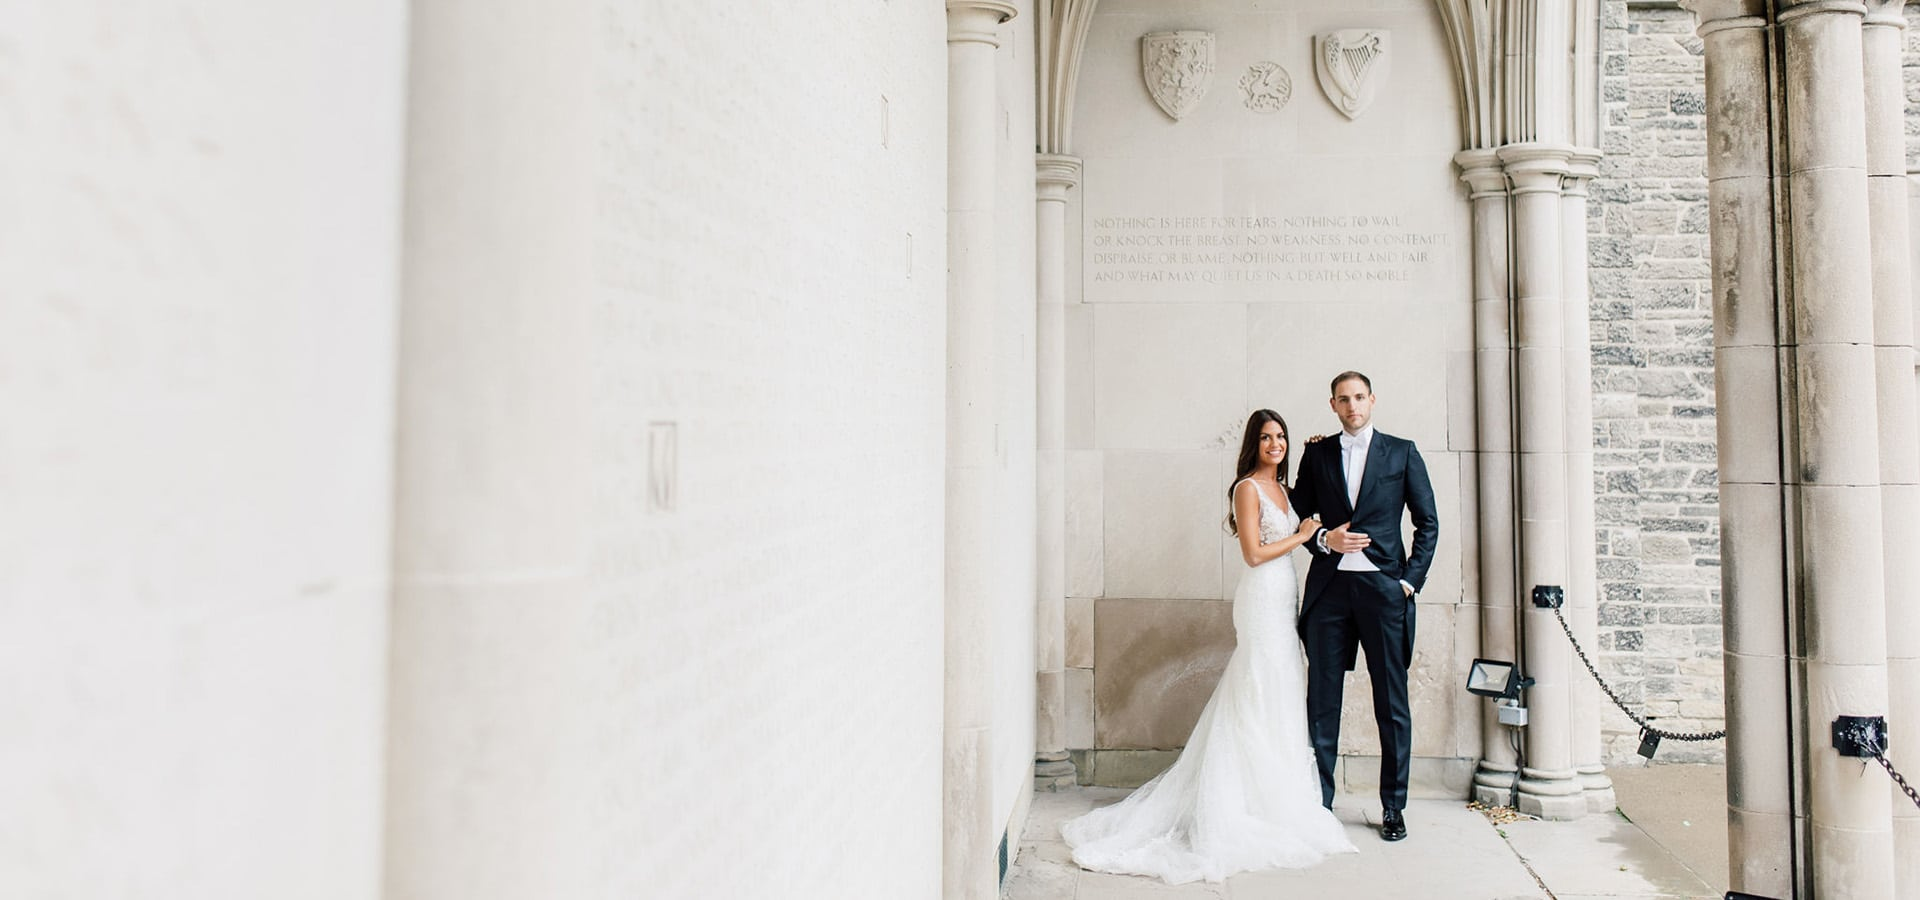 Hero image for 5 Ways to Involve your Loved Ones in Your Elopement